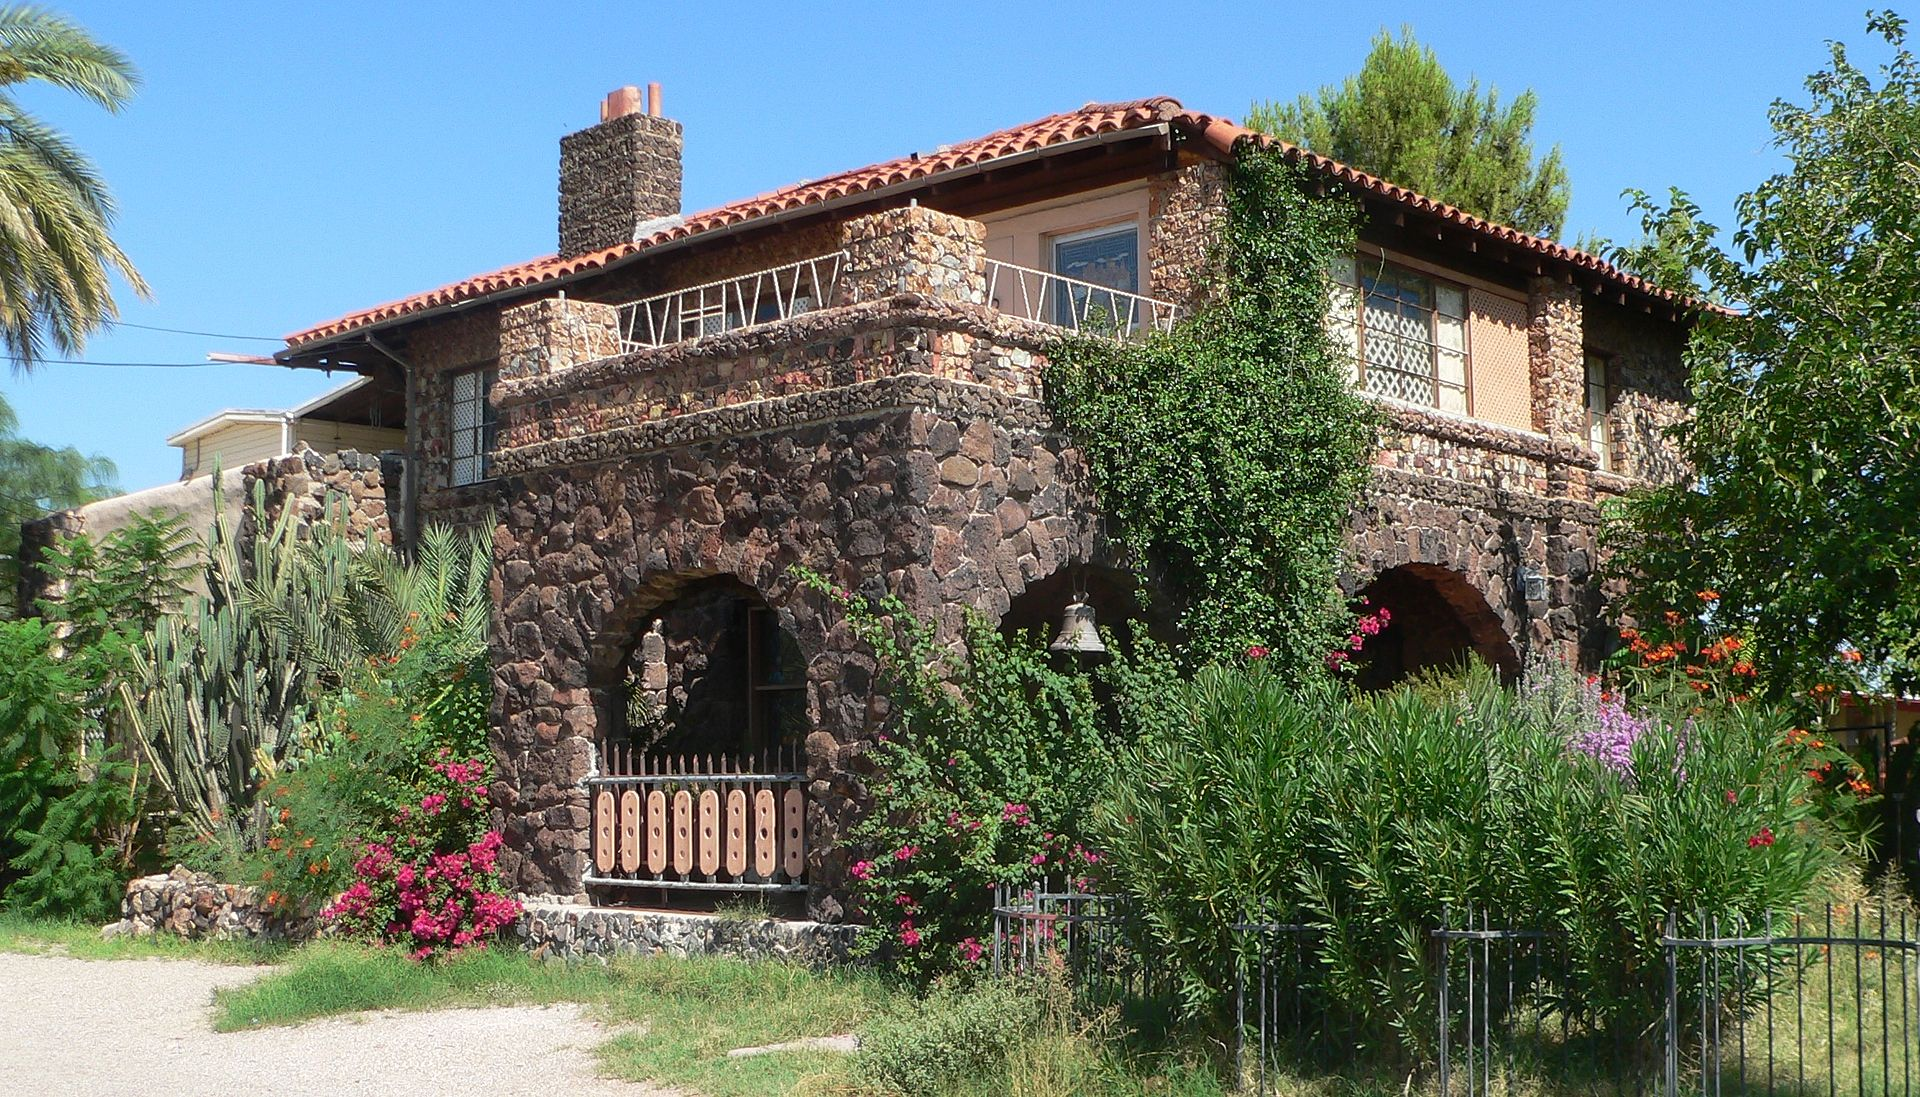 The Copper Bell Bed and Breakfast building was constructed around 1910 and is one of the few examples of volcanic stone construction in Tucson.